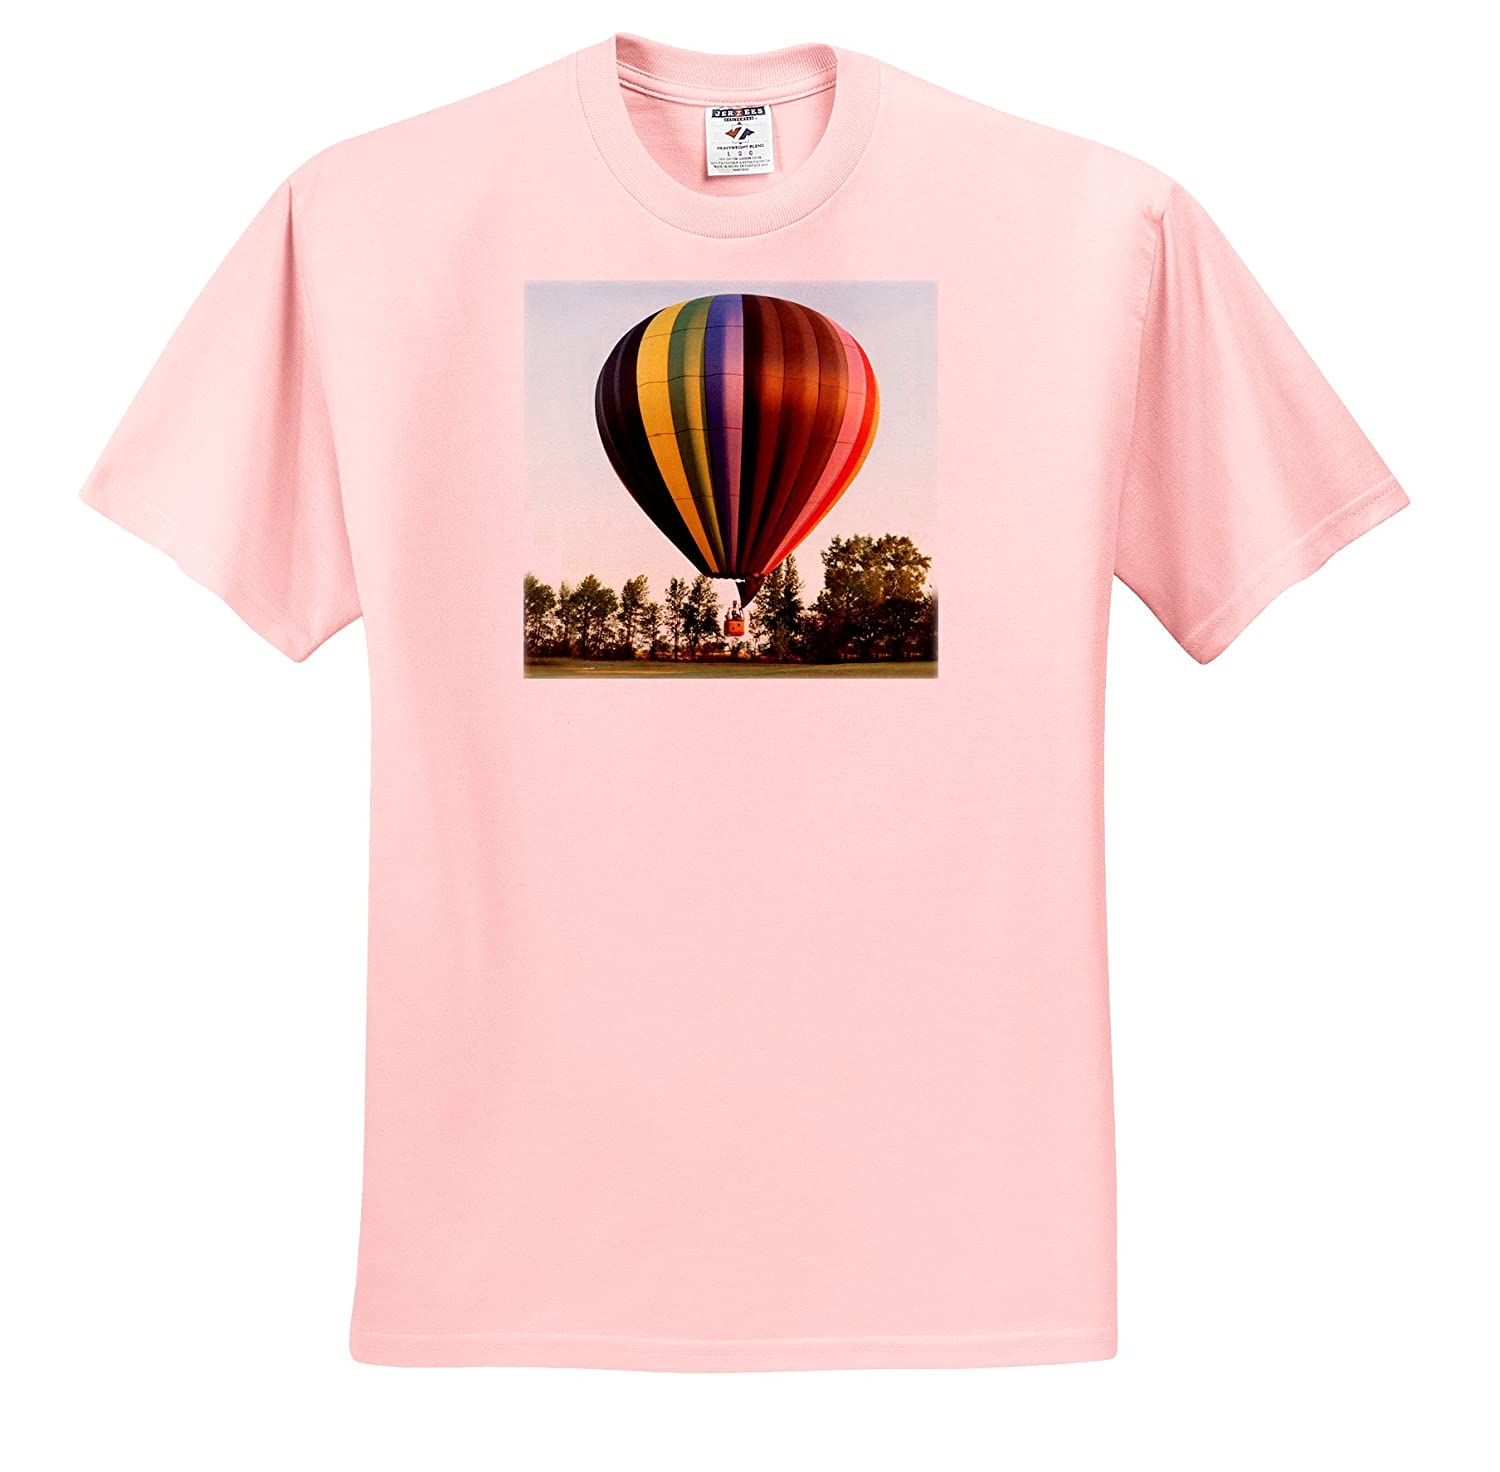 Amazon.com: Hot Air Balloons - Hot Air Balloon - T-Shirts: Clothing